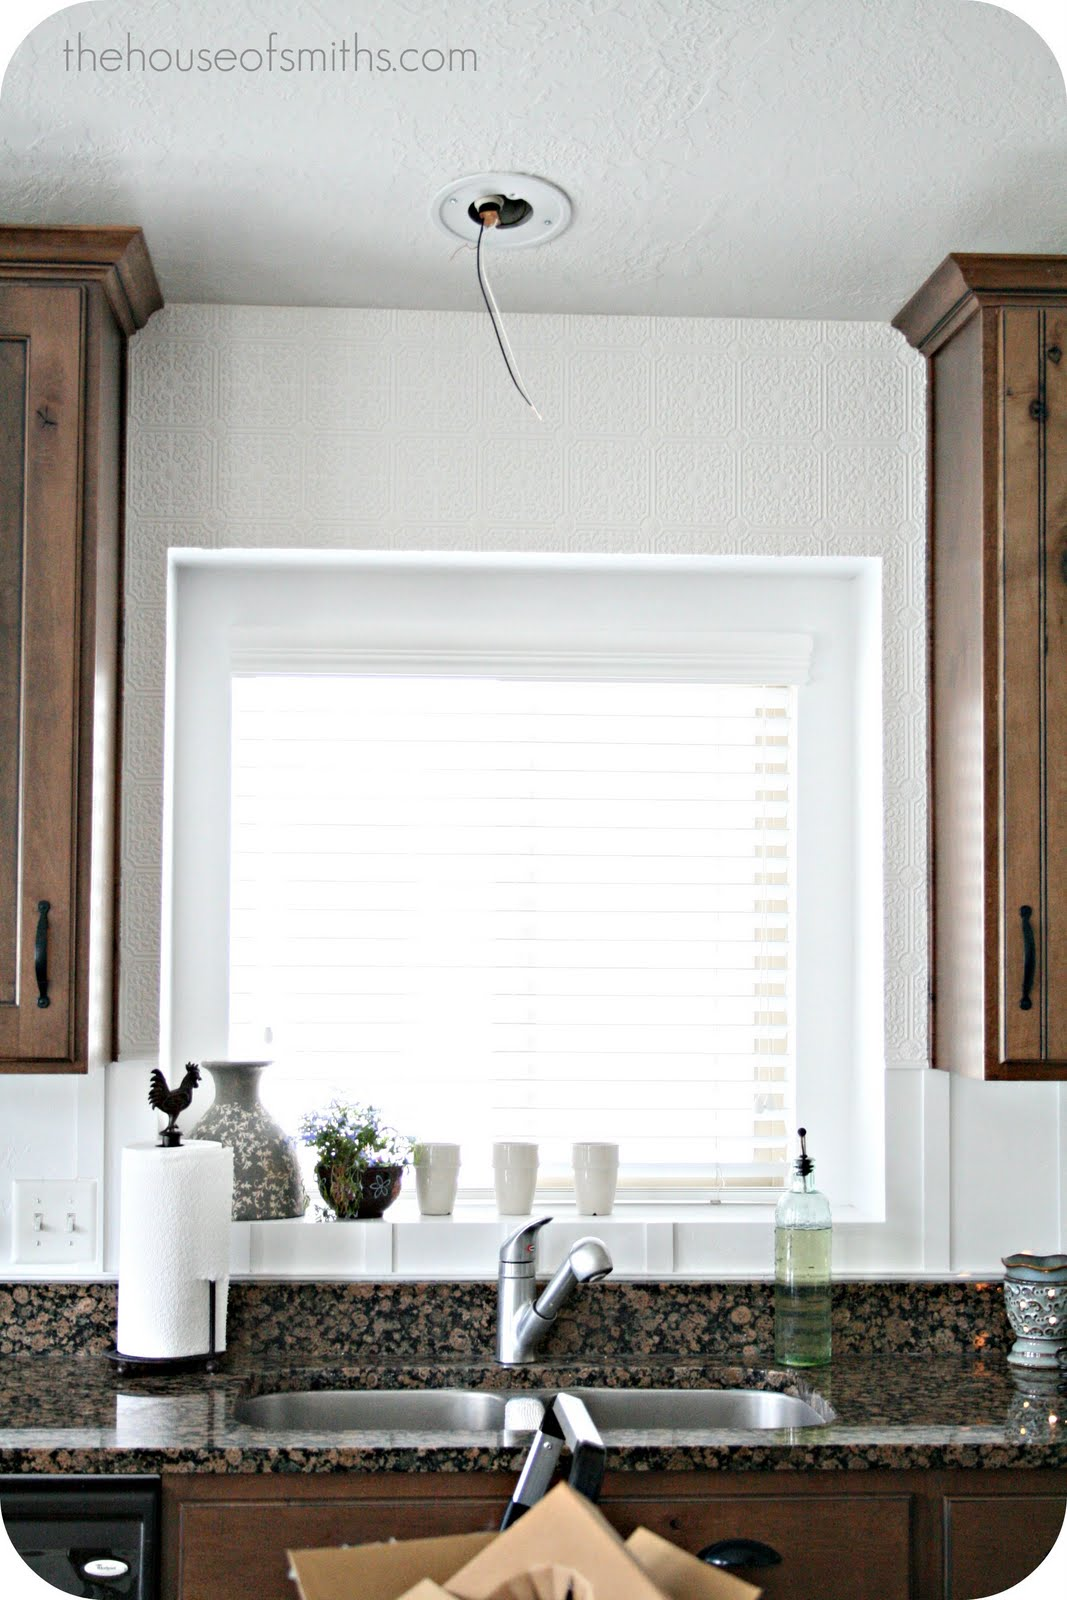 Recessed Lighting For Kitchen New Kitchen Lighting Converting A Can Light With A Recessed